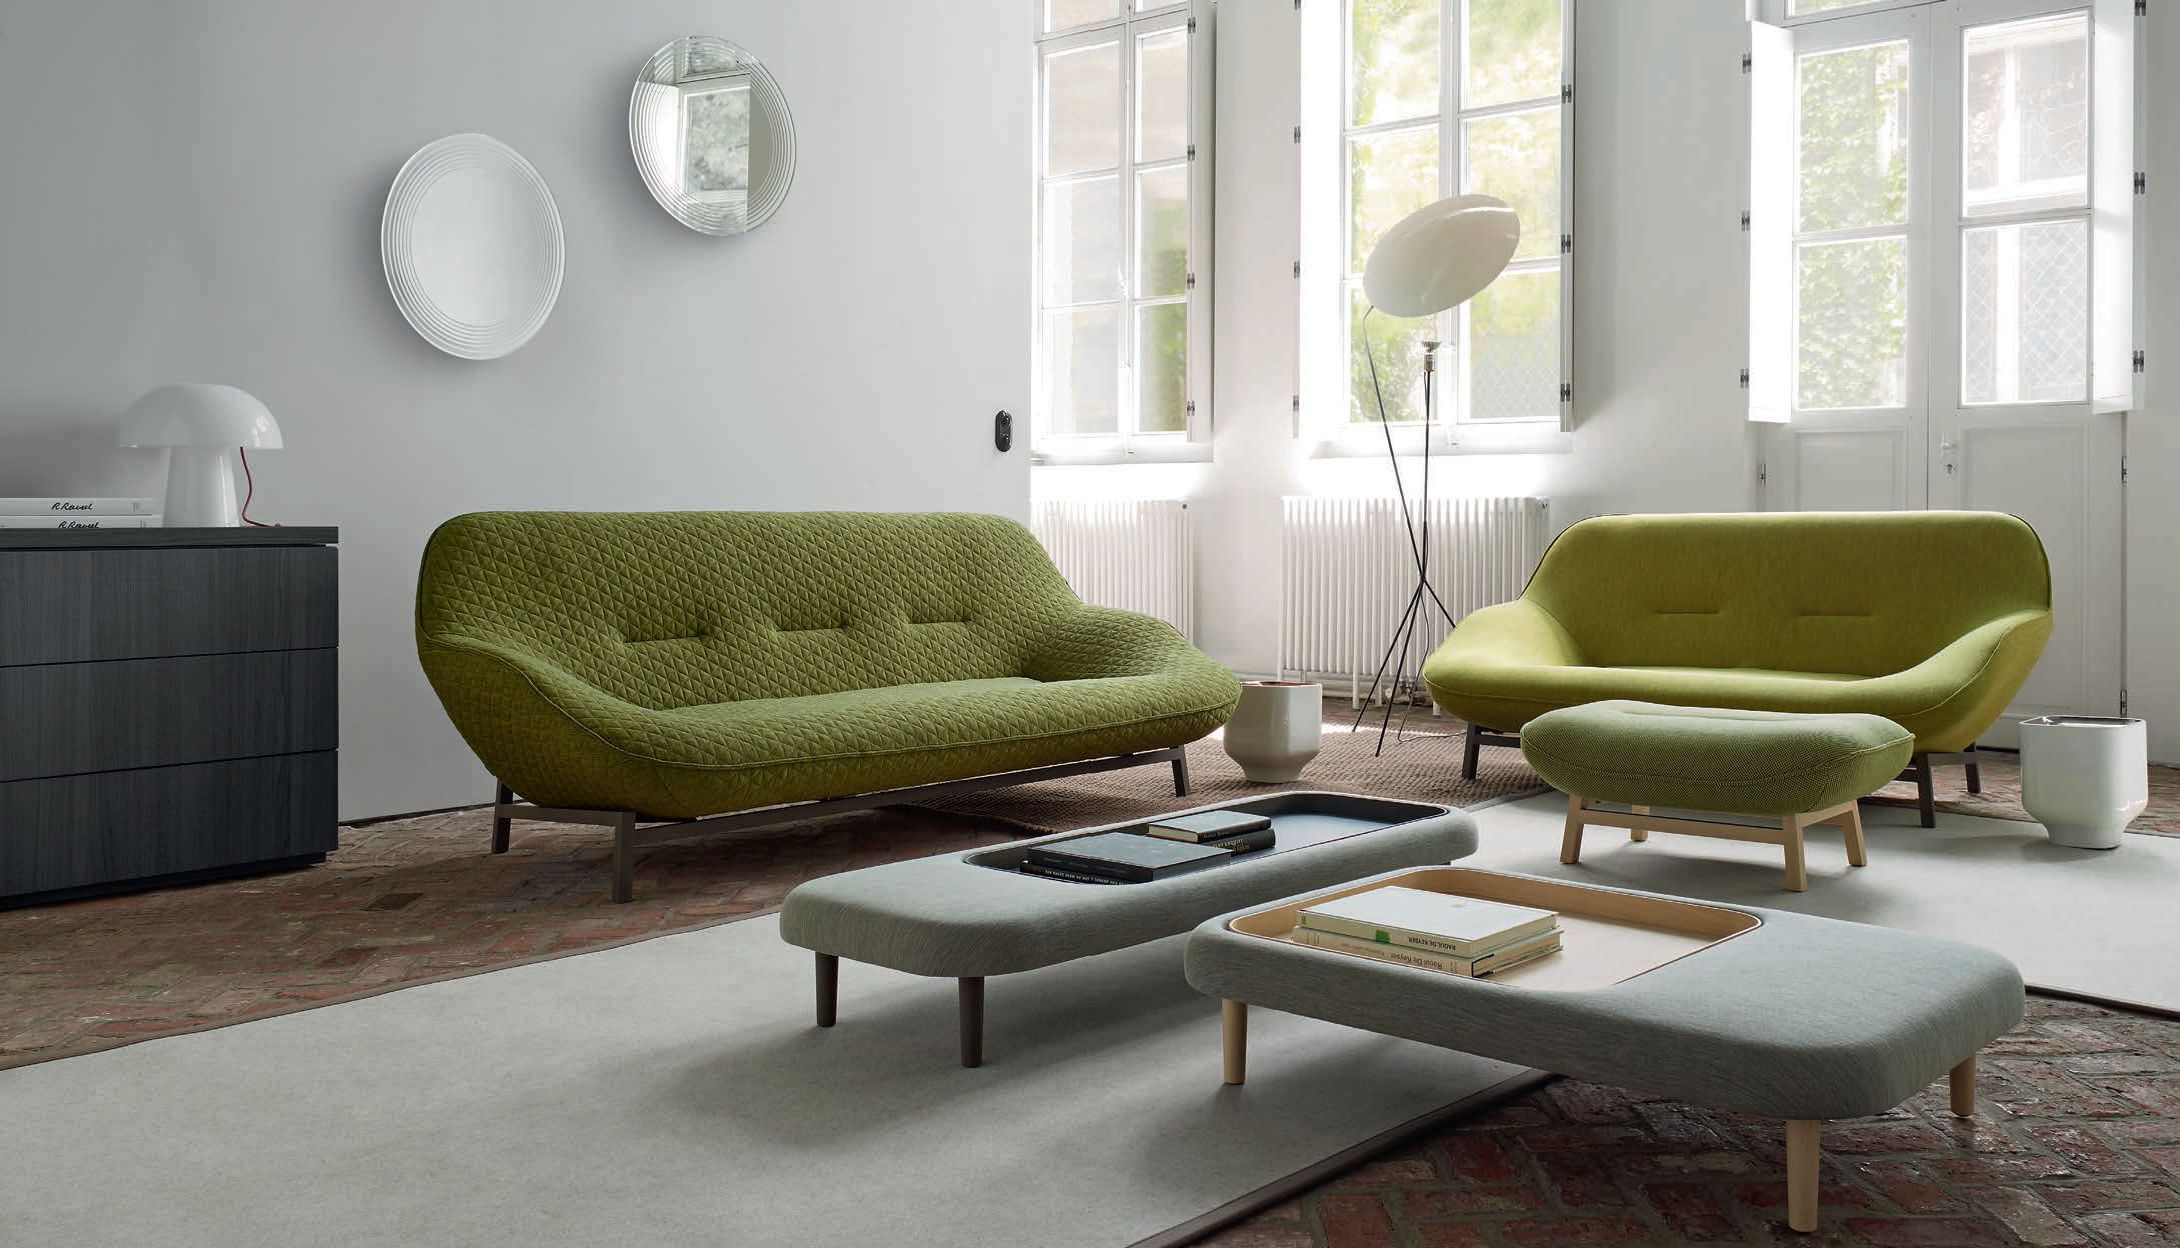 Ligne Roset Ploum Sofa Green   Google Search